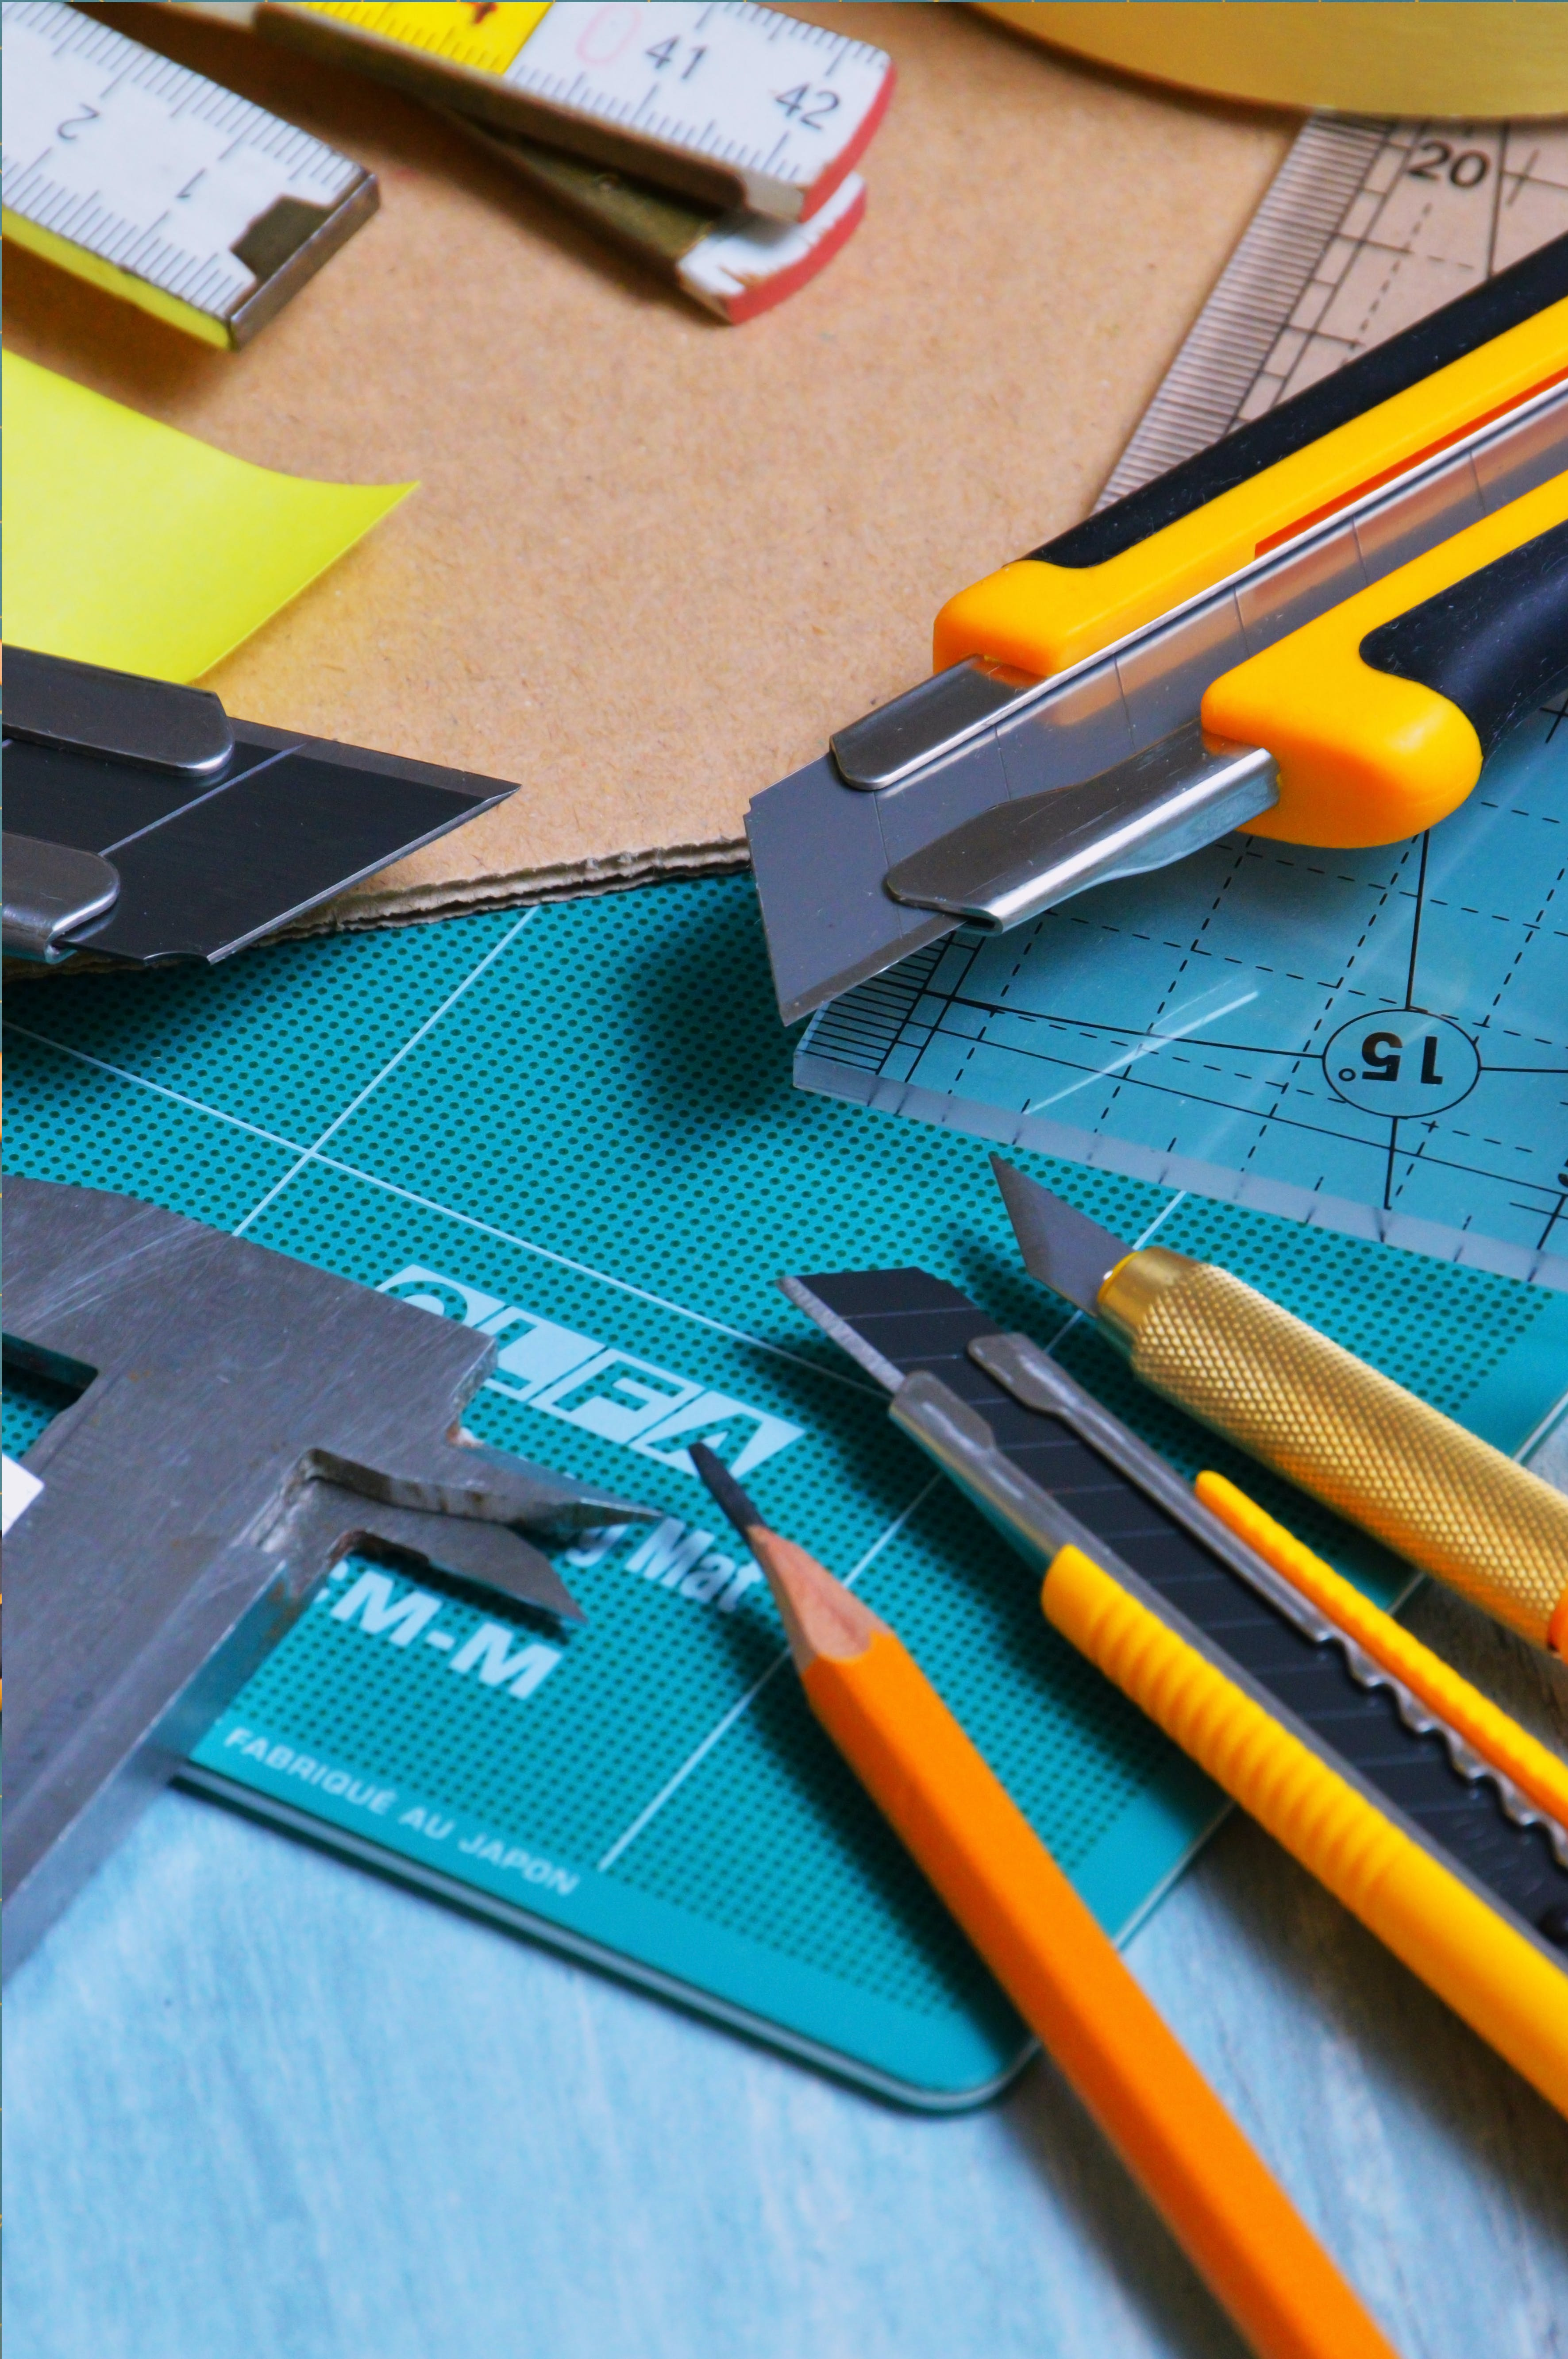 Close-up Photography Pencil and Cutters on Table